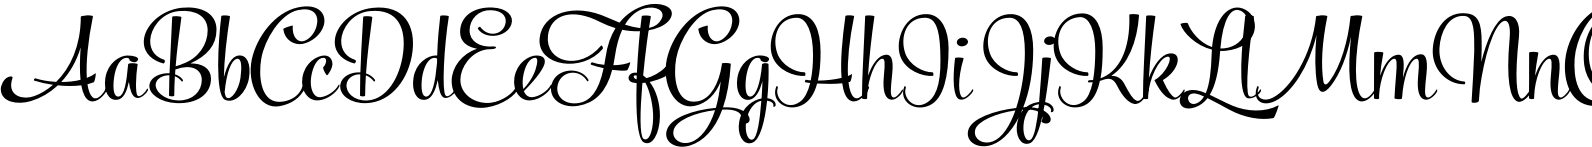 Powder Script Regular